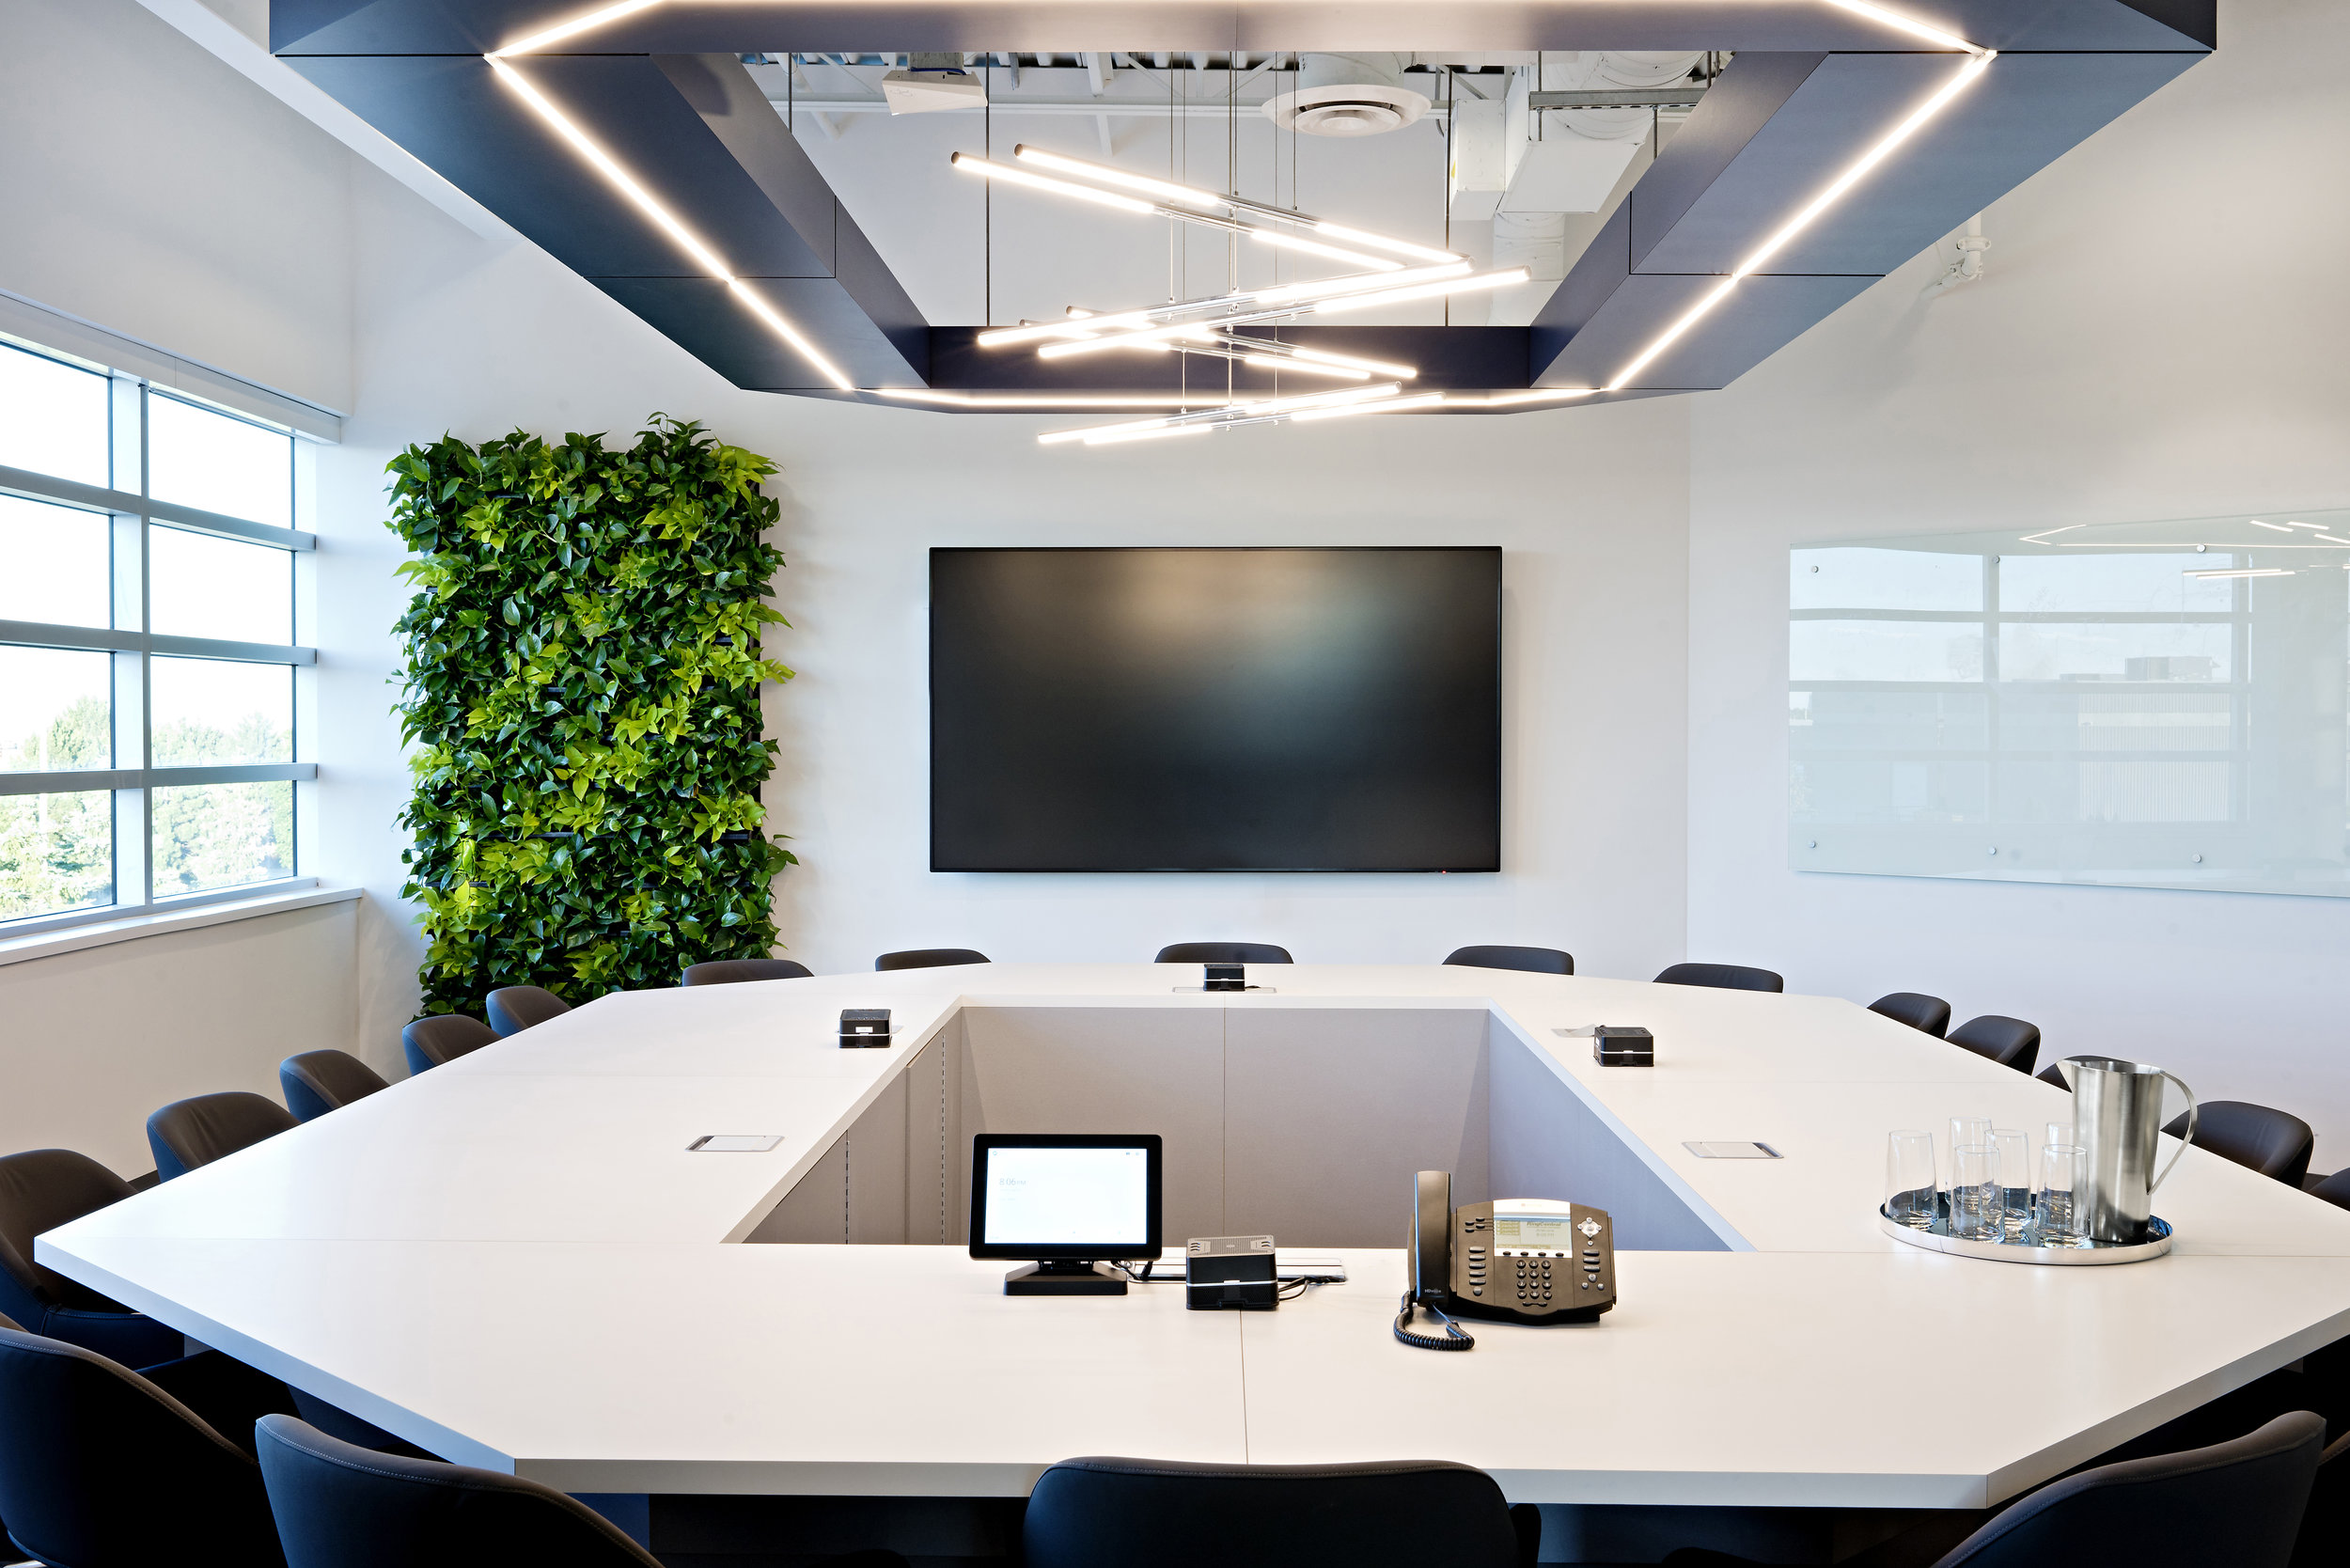 8 pizzale design interior design commercial office space green living wall white painted walls natural light large windows custom angled desk large wall mount tv modern contemporary light fixtures glass white board.jpg